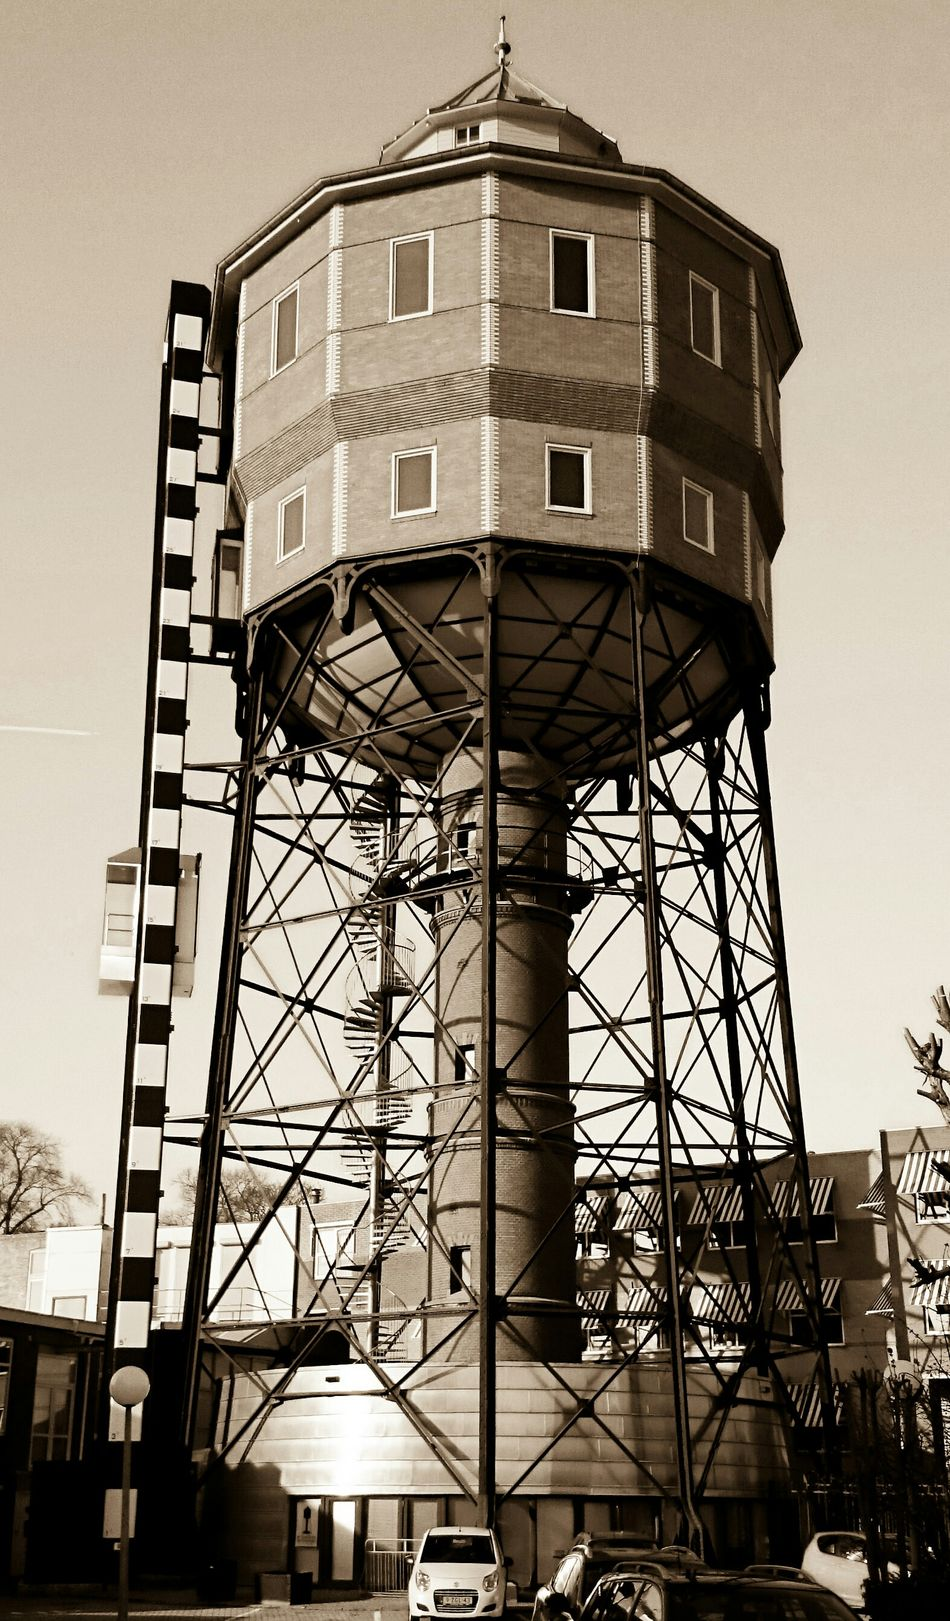 Discover Your City Groningen, Old Buildings. Water Tower in Monochrome, Architecture